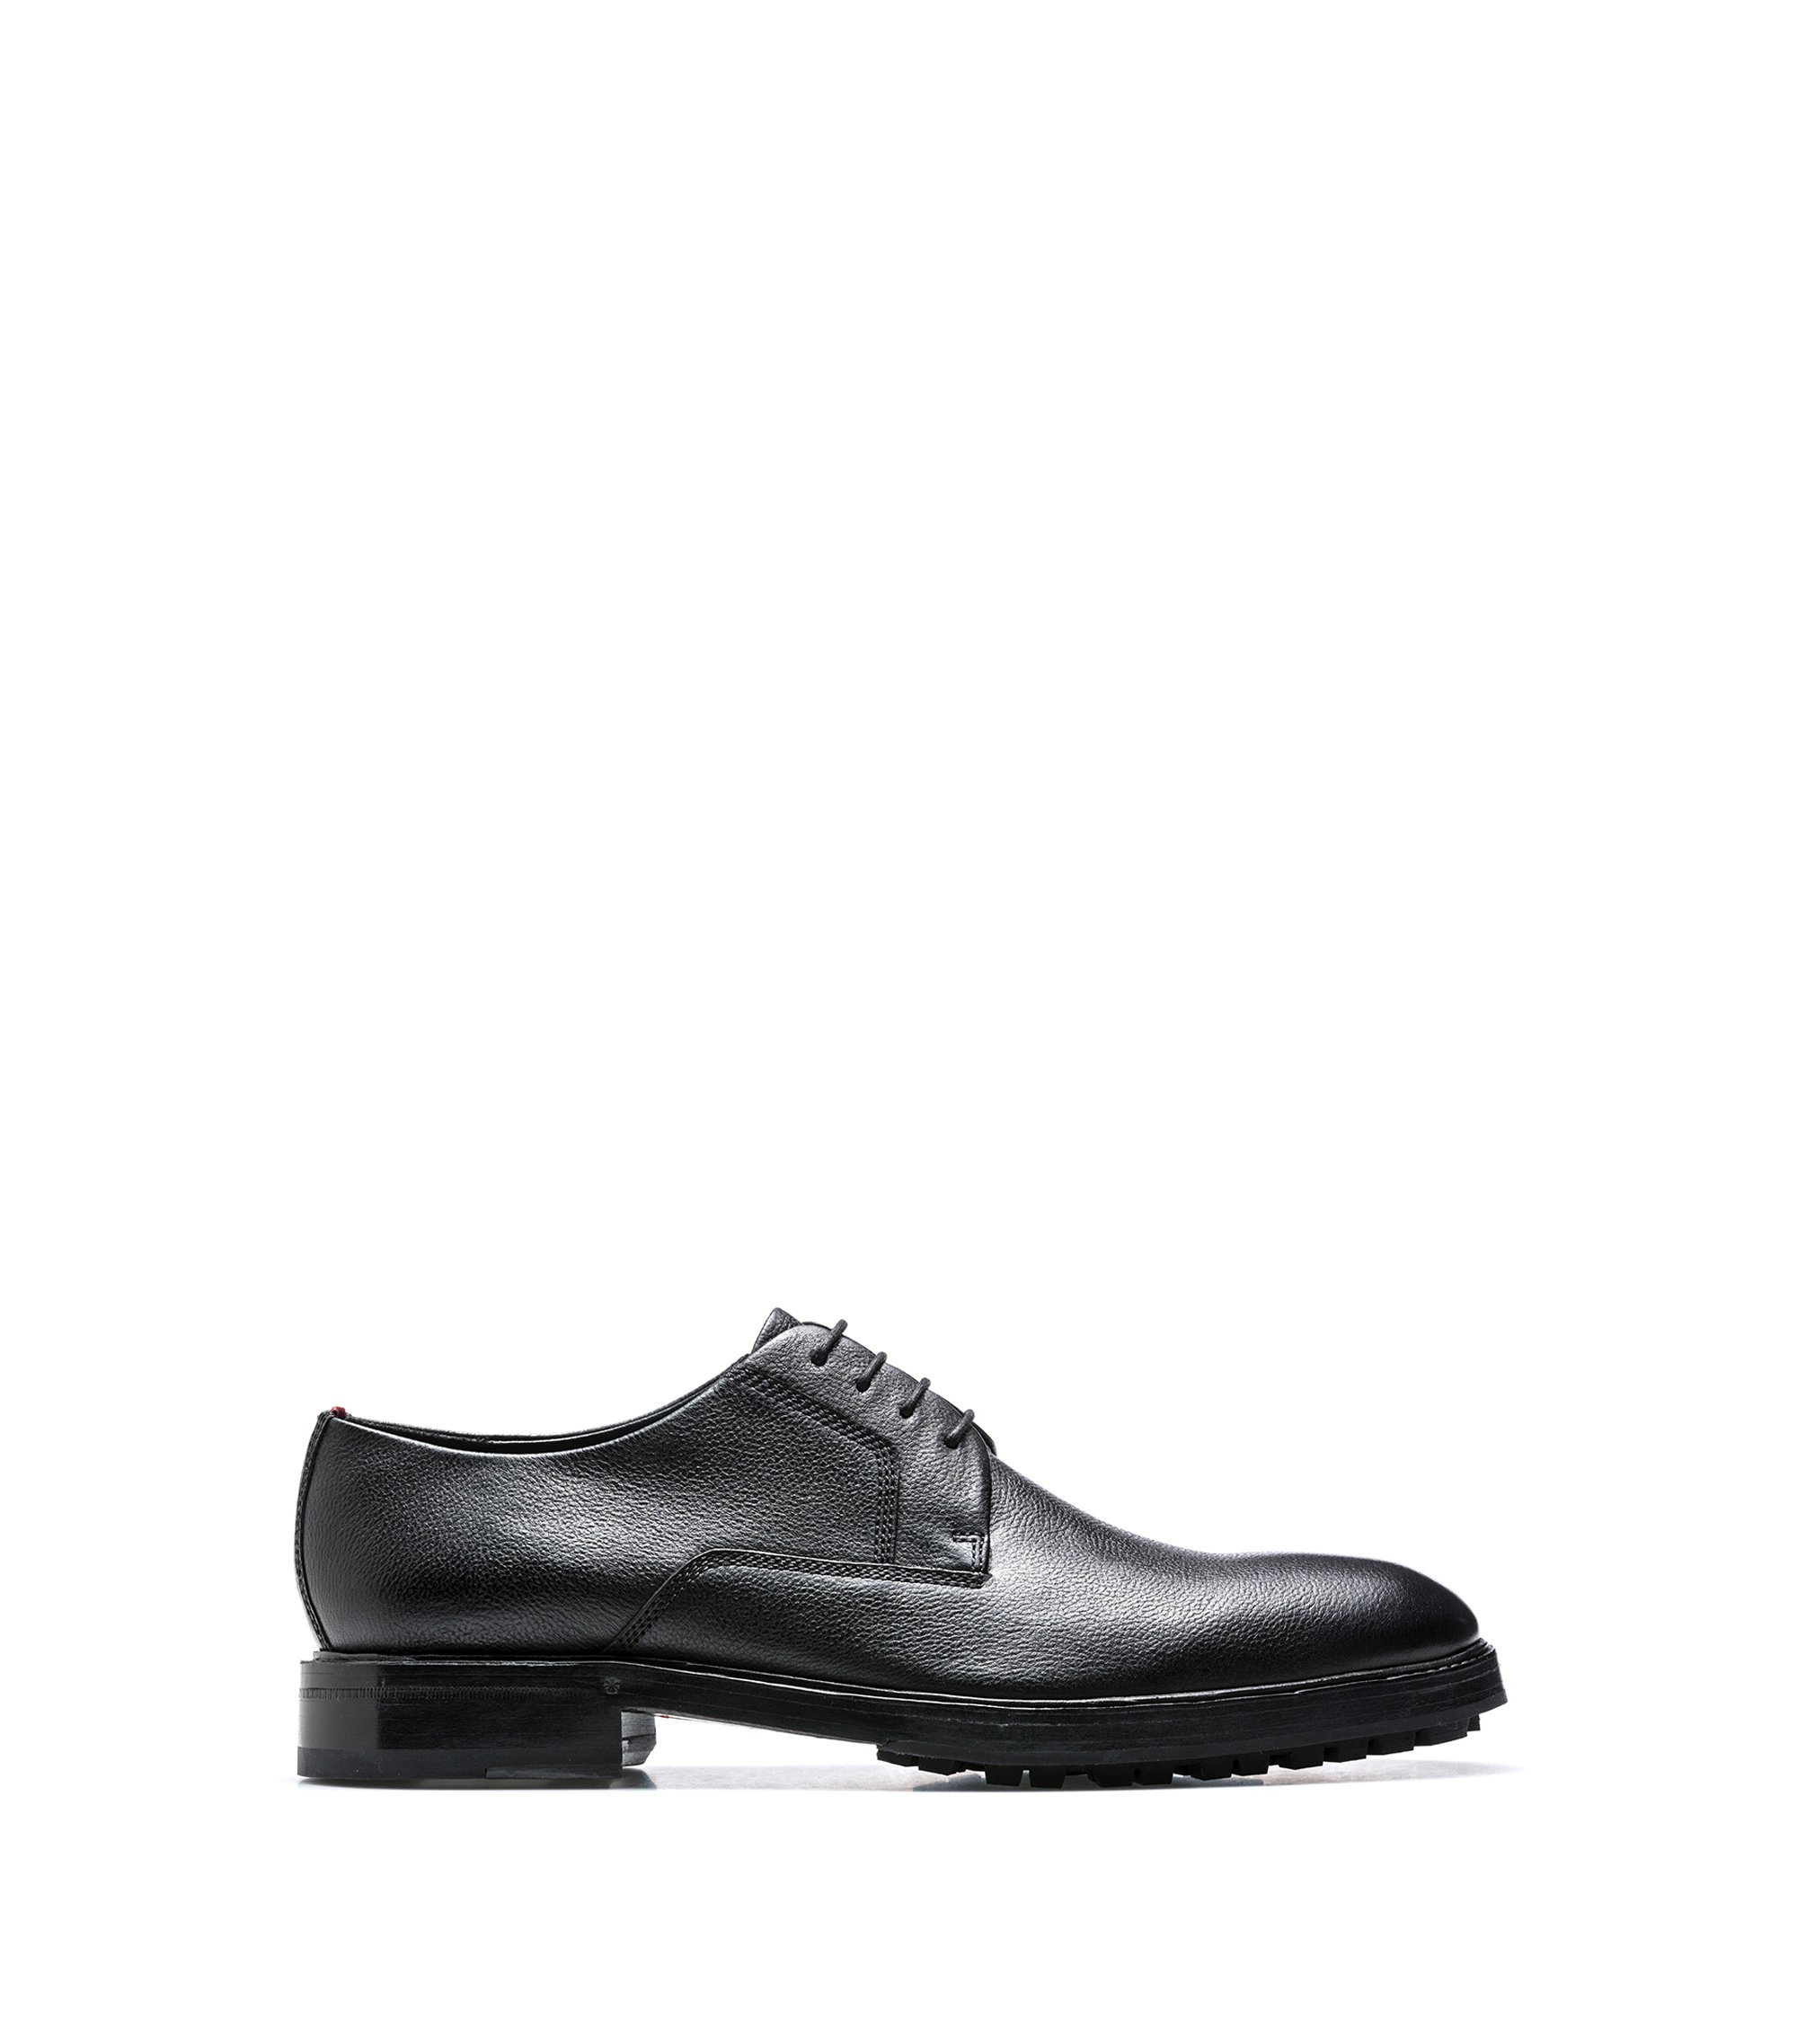 Tumbled-leather Derby shoes with lugged soles, Black